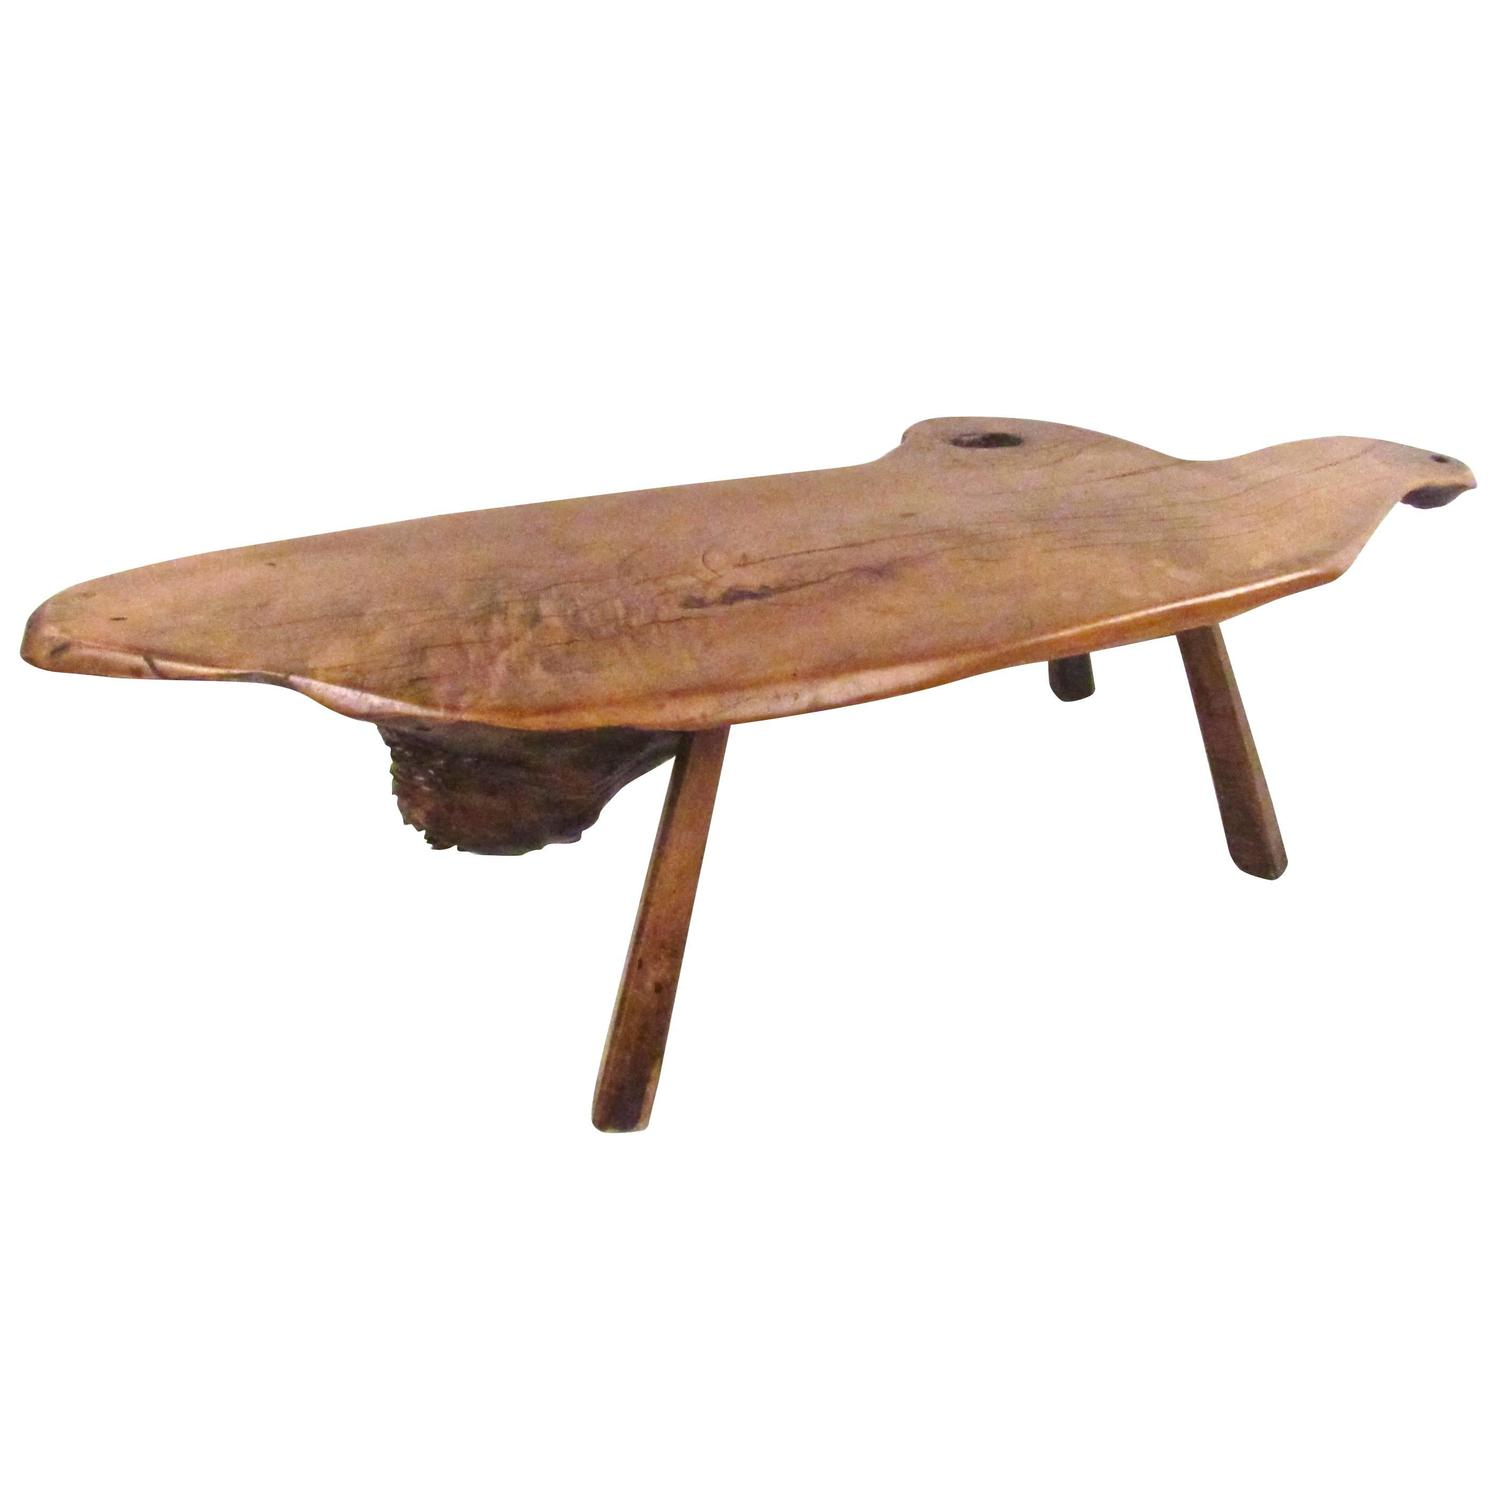 Vintage Rustic Freeform Tree Slab Coffee Table For Sale At: Vintage Rustic Free Edge Tree Slab Coffee Table For Sale